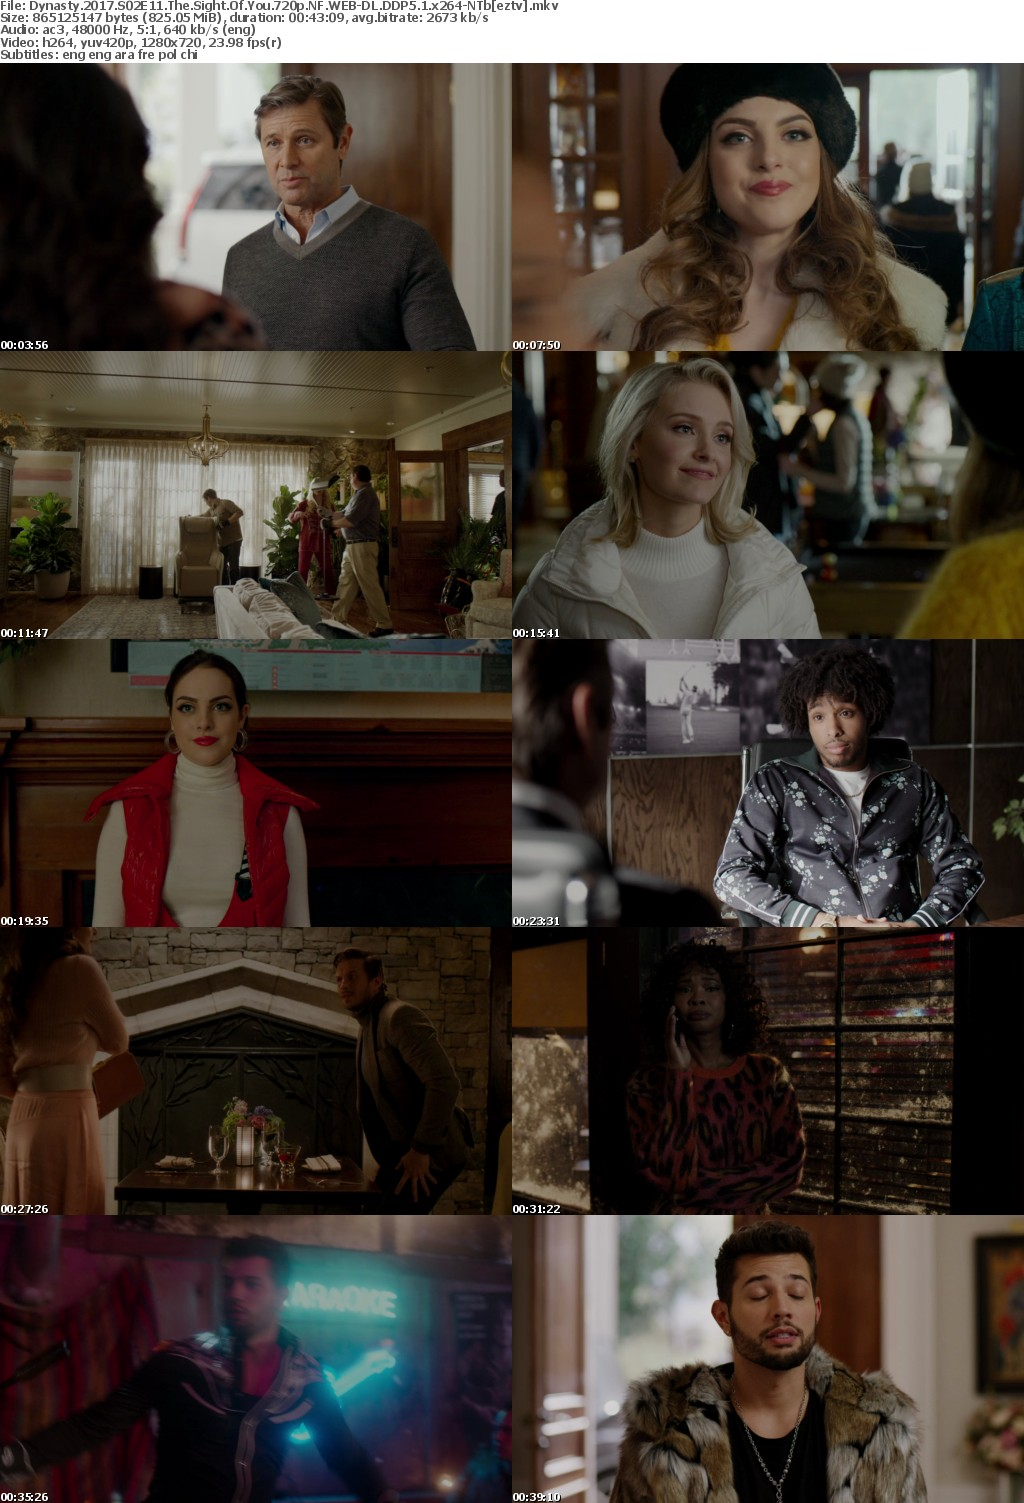 Dynasty (2017) S02E11 The Sight Of You 720p NF WEB-DL DDP5.1 x264-NTb